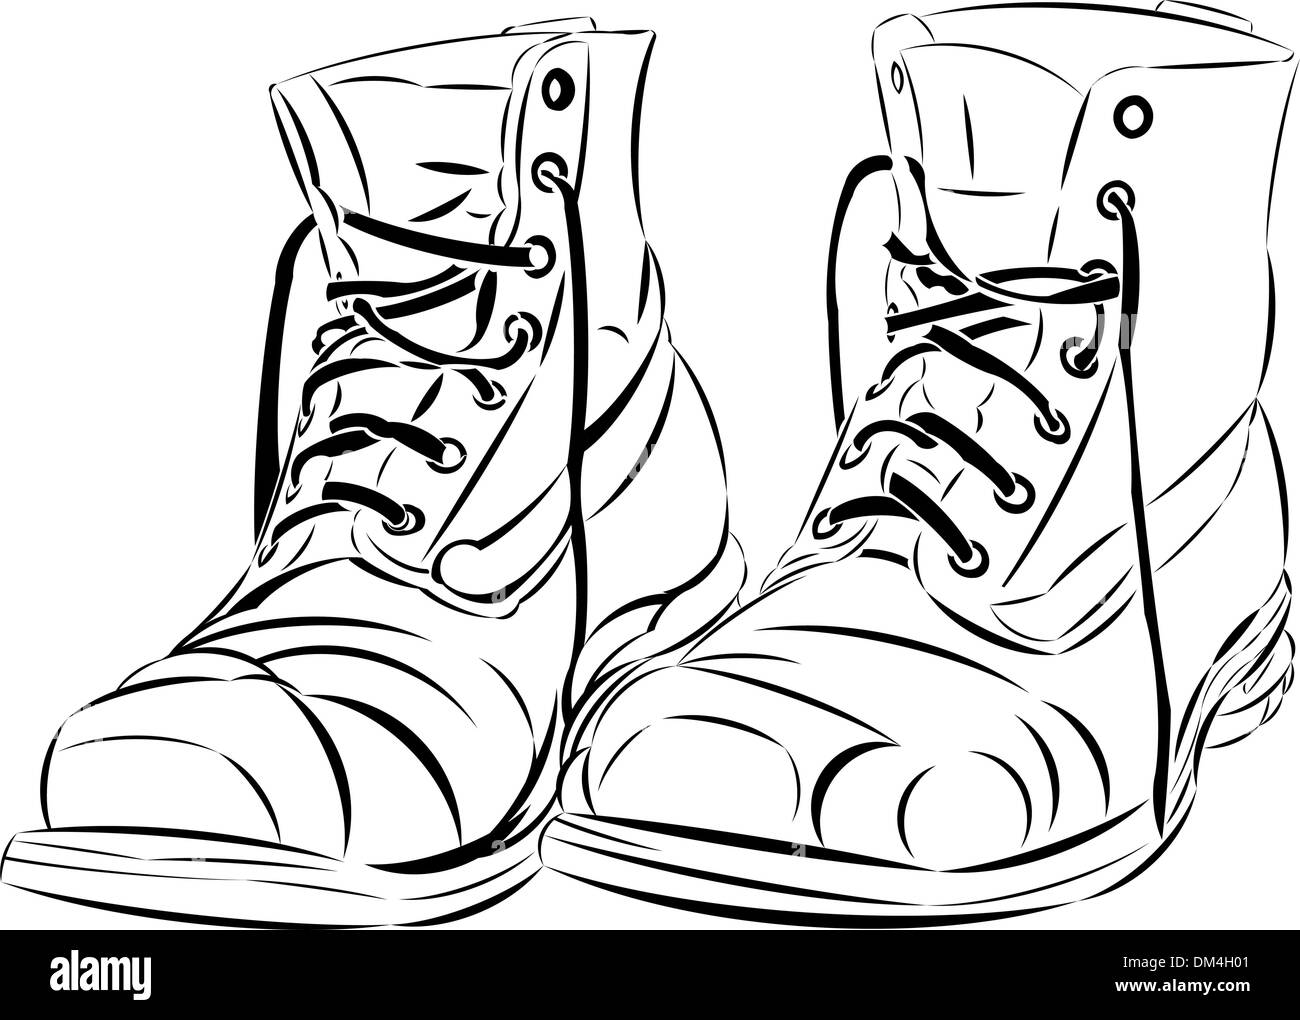 Walking Shoes Vector Vectors Stock Photos & Walking Shoes Vector ...